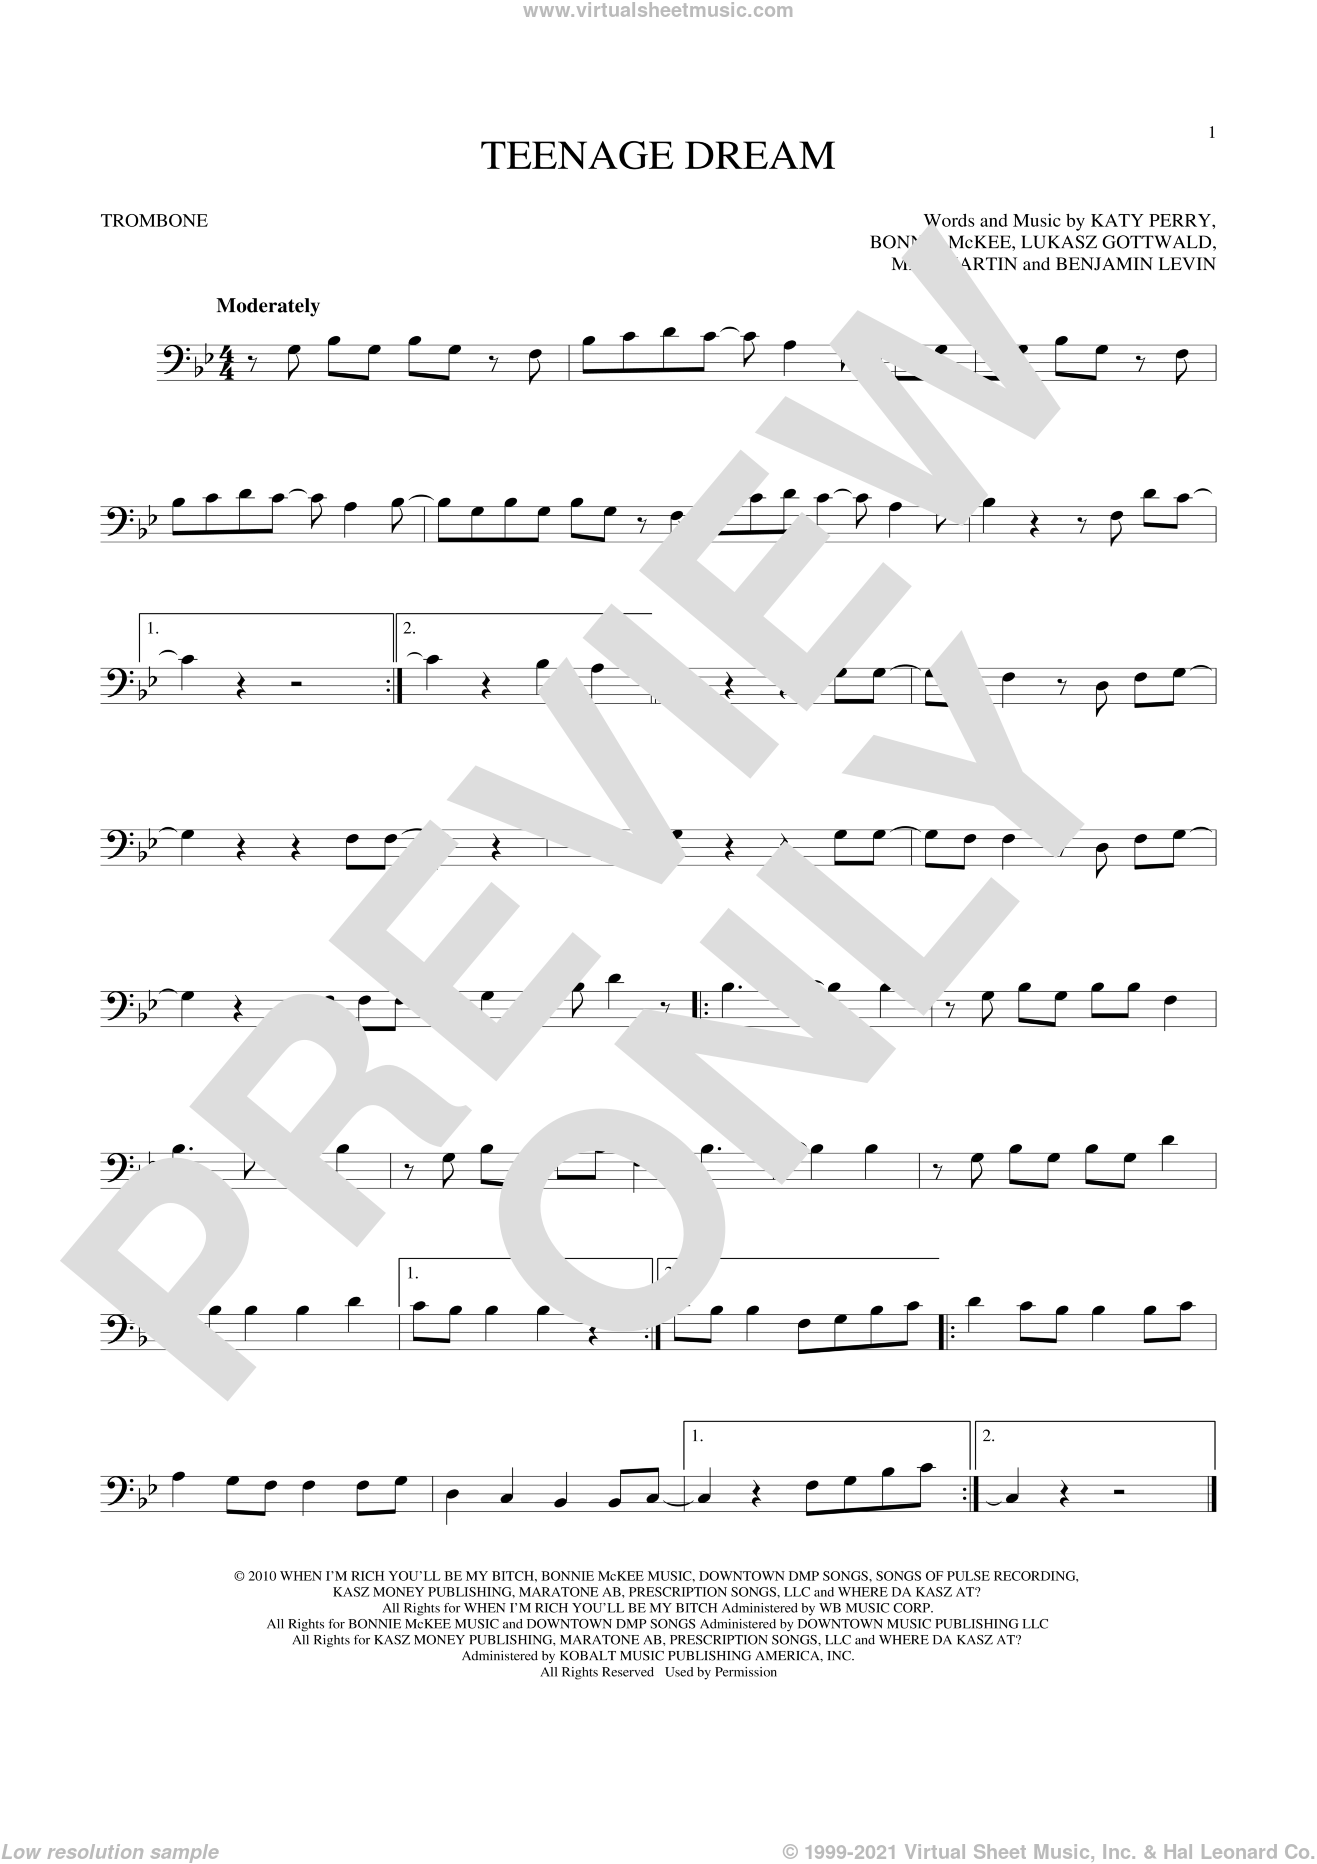 Teenage Dream sheet music for trombone solo by Katy Perry, Benjamin Levin, Bonnie McKee, Lukasz Gottwald and Max Martin, intermediate skill level